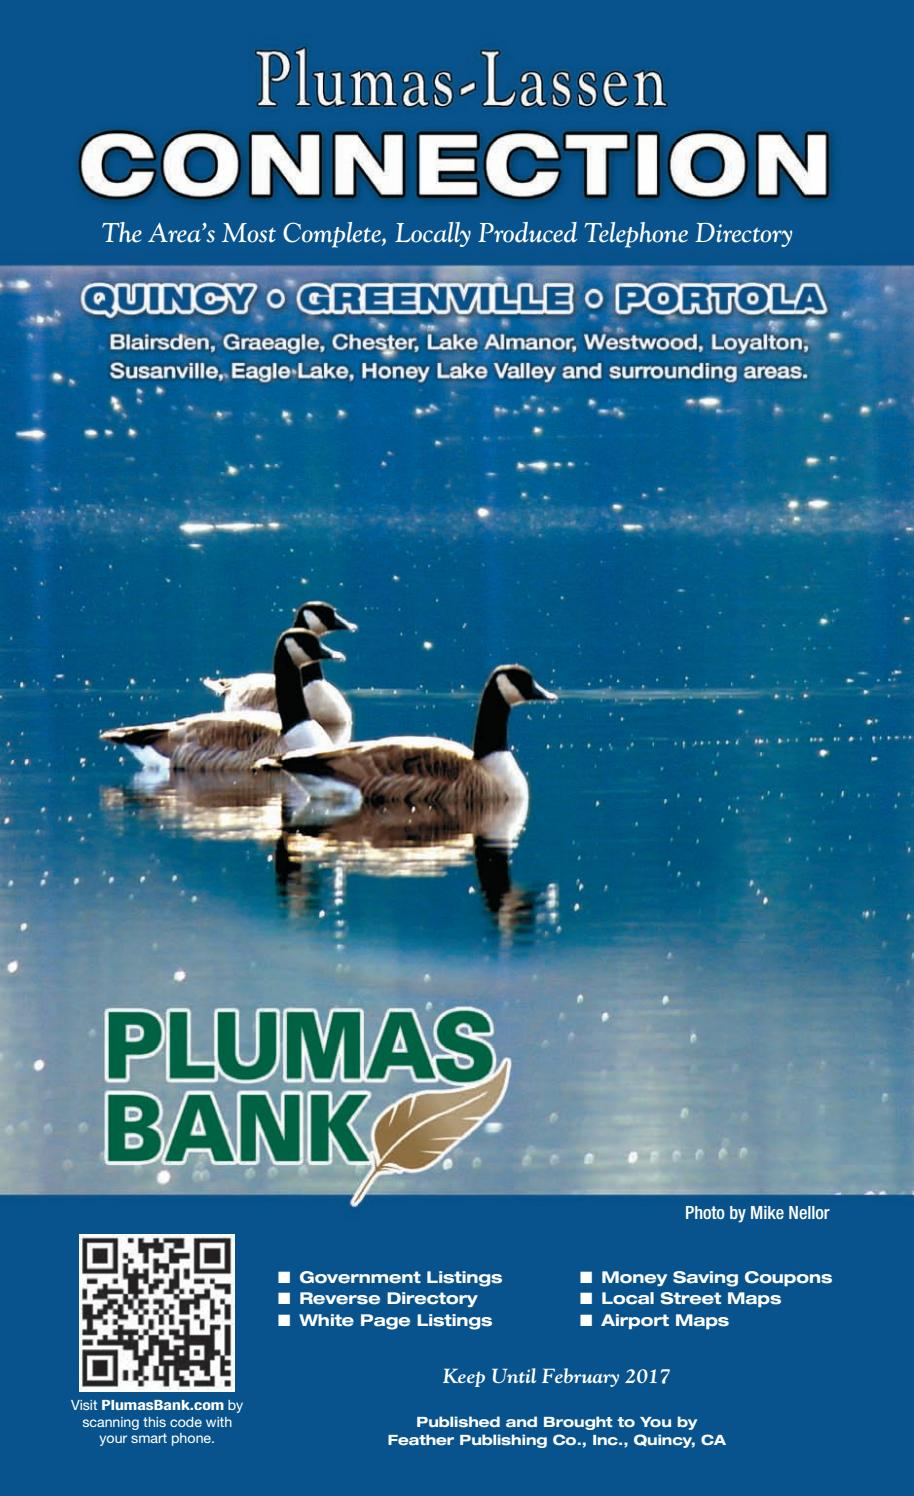 plumas lassen connection telephone directory by kevin mallory 2016 plumas lassen connection telephone directory by kevin mallory issuu